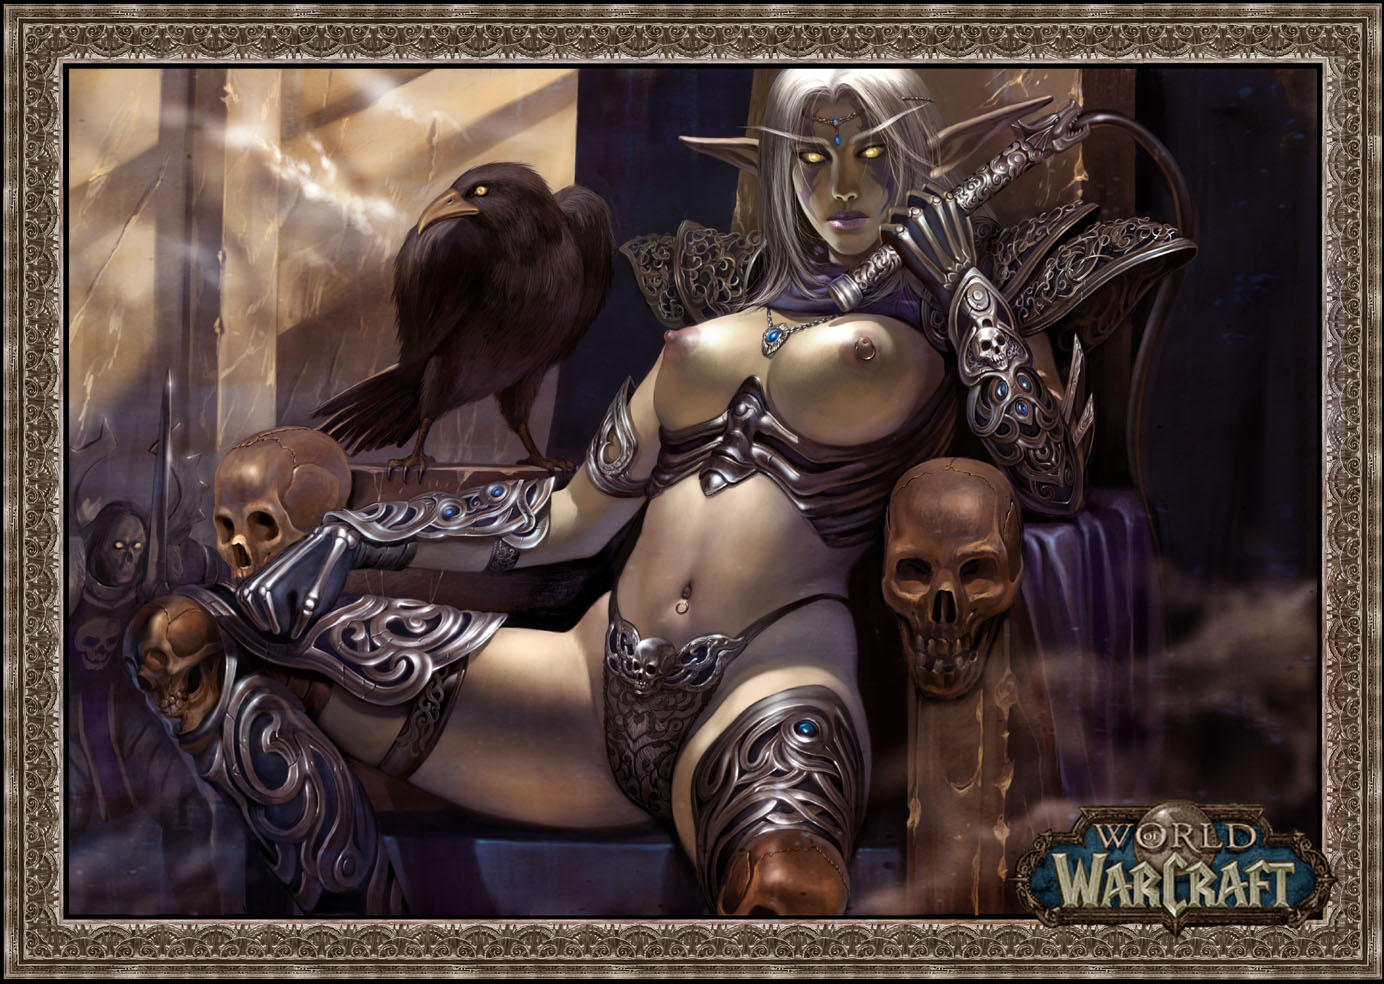 Wallpaper 48 warcraft erotic anthology 3d fantasy  nude clips